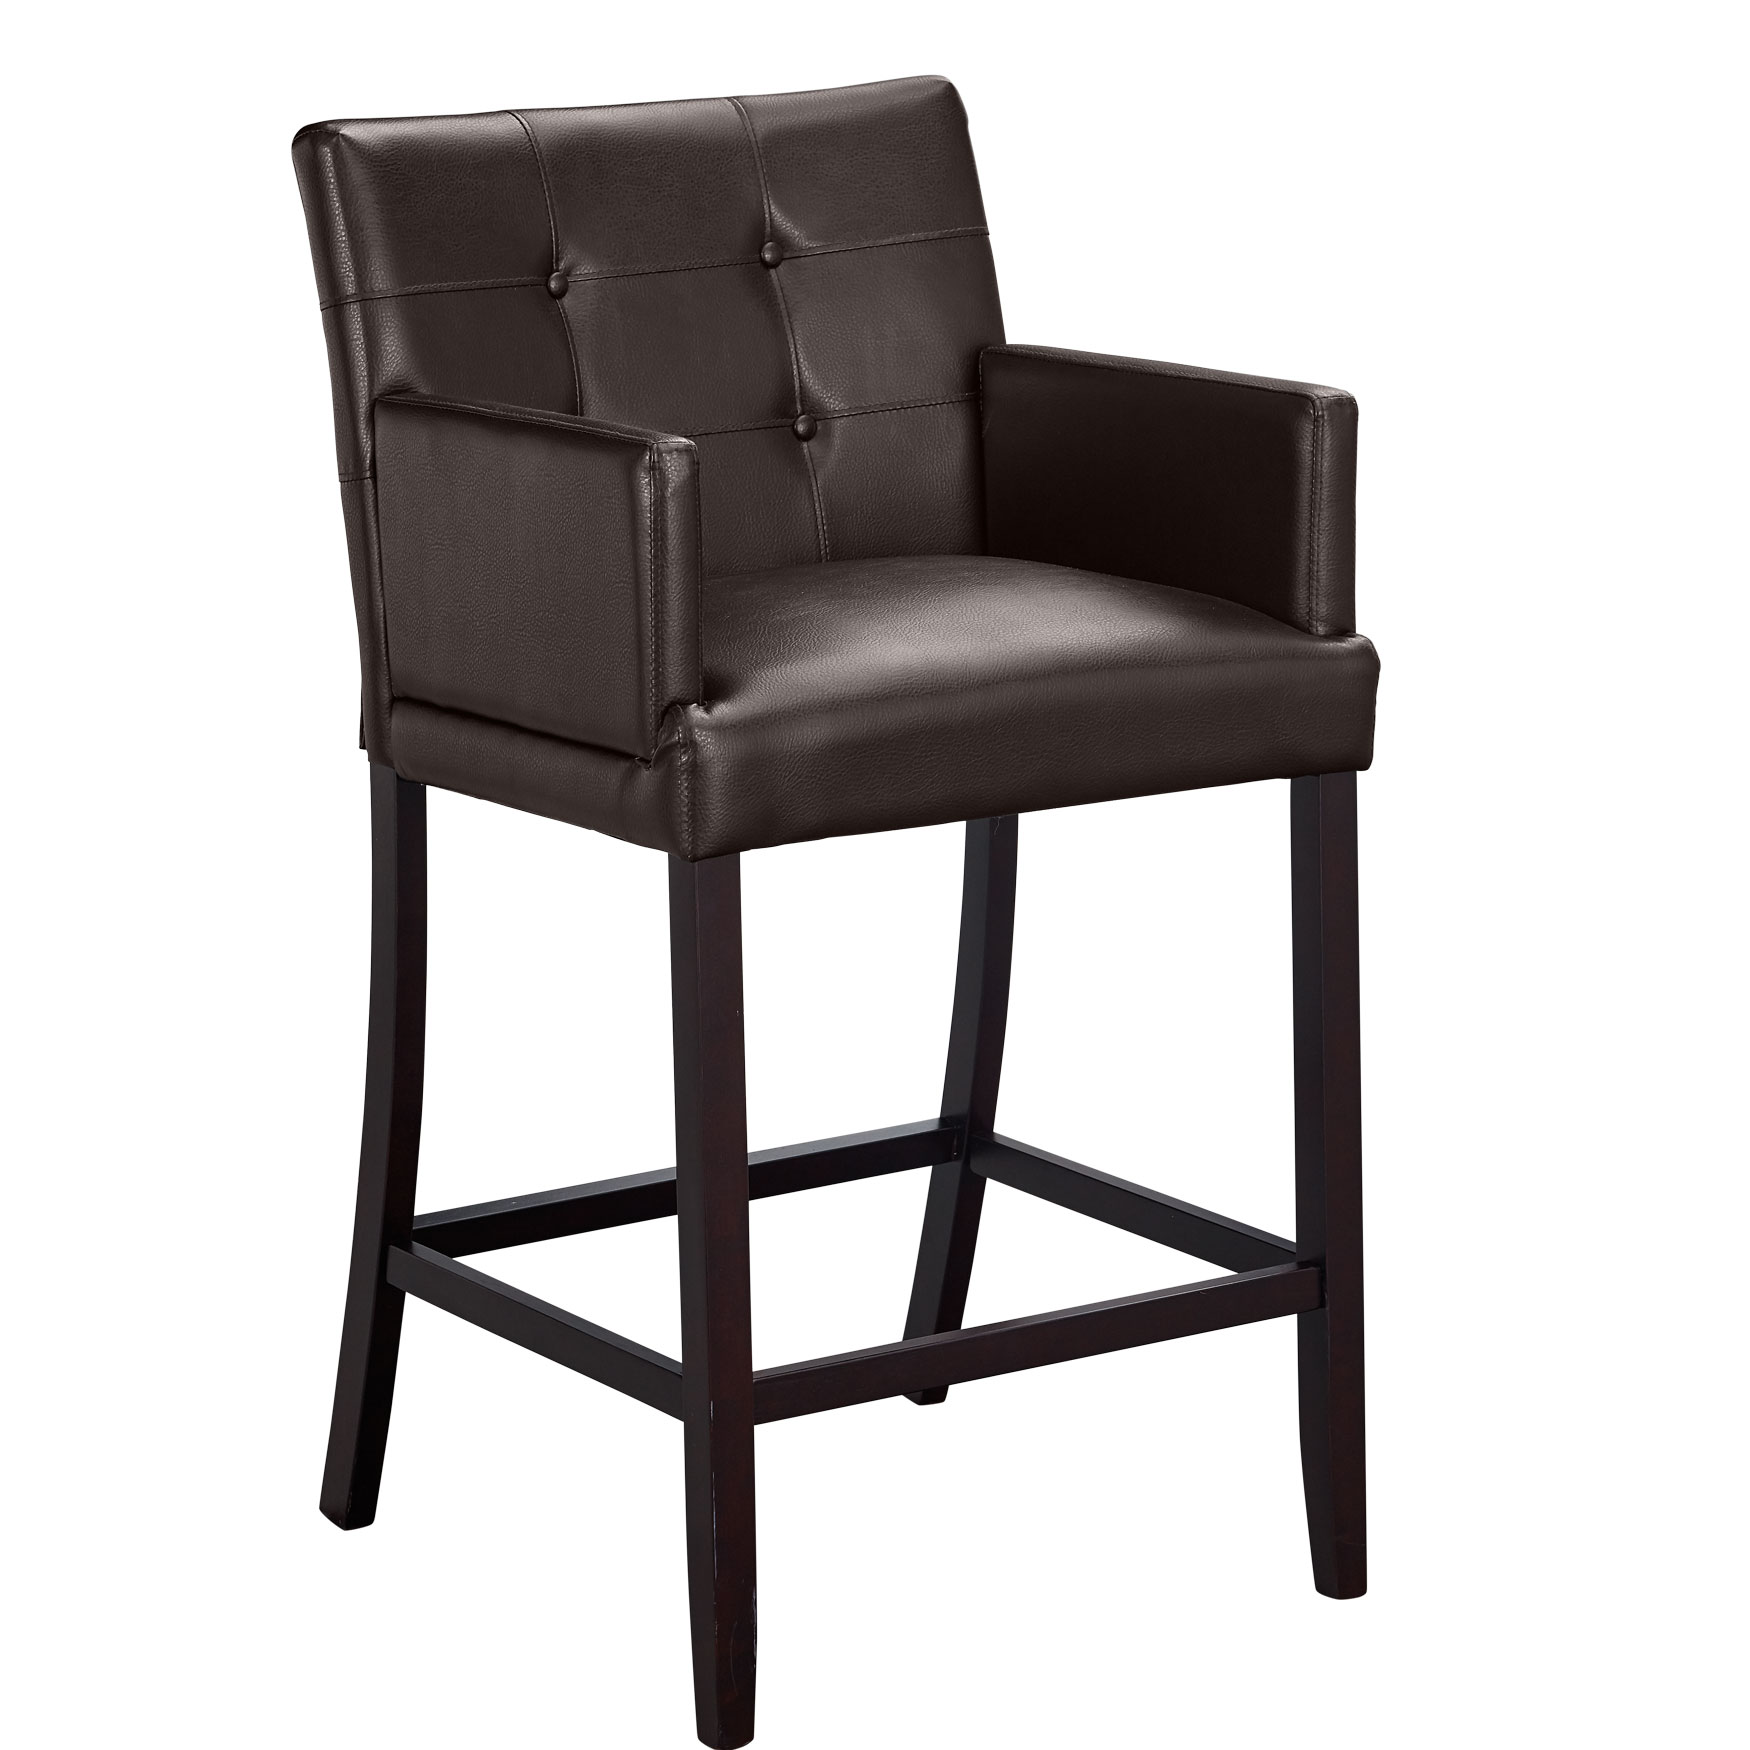 Pearce Extra Wide Bar Stool Dark Brown